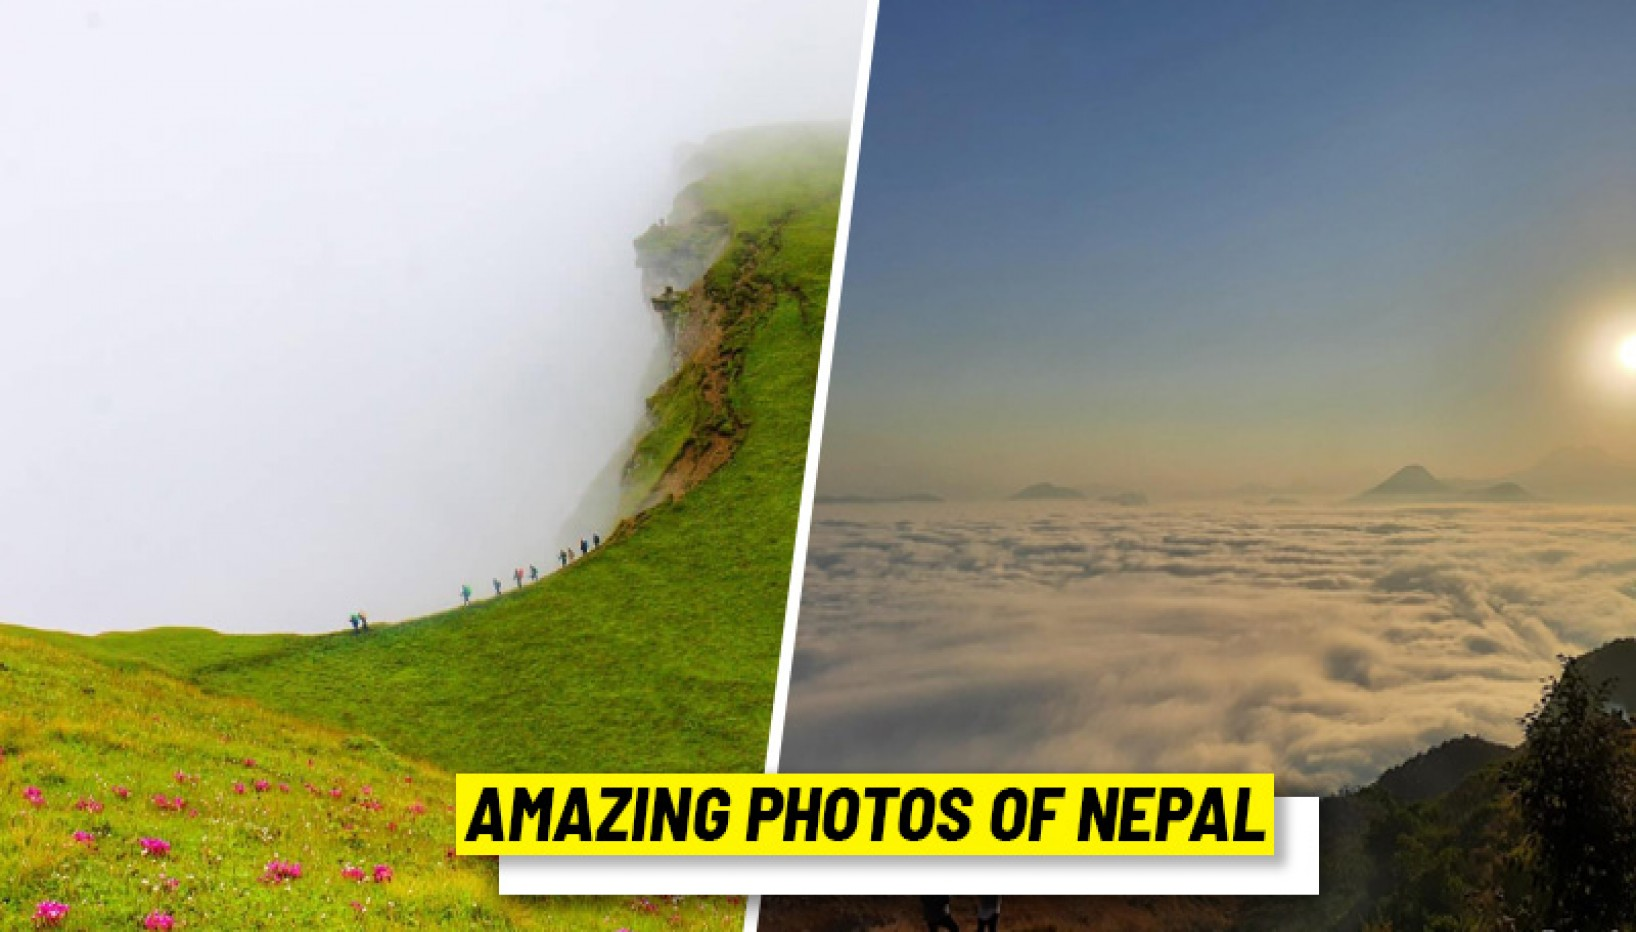 15 Photos Of Nepali Landscapes That Will Spark Your Inner Wanderlust